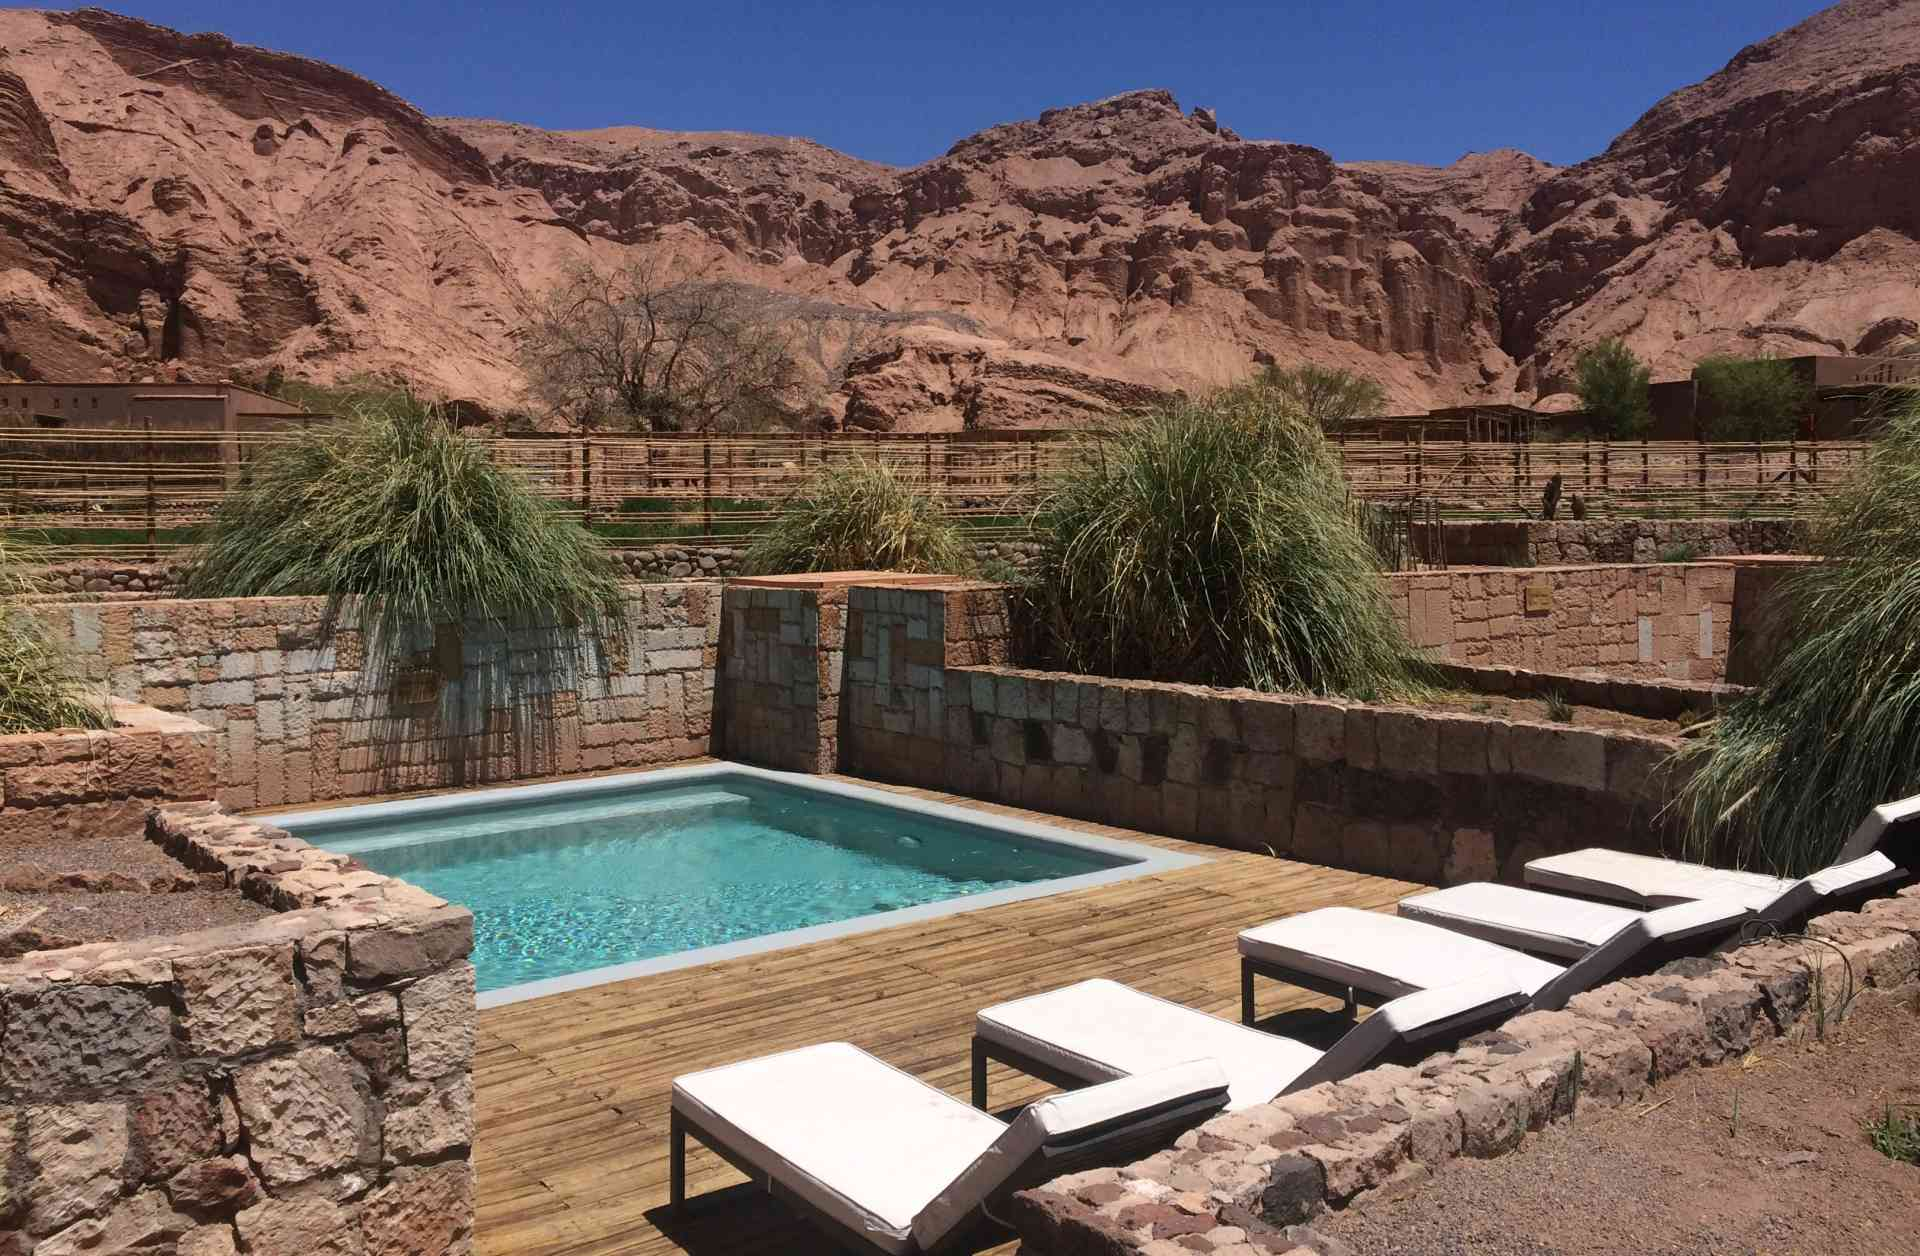 A pool with a view at Alto Atacama Desert Lodge & Spa, Chile by James Atwell